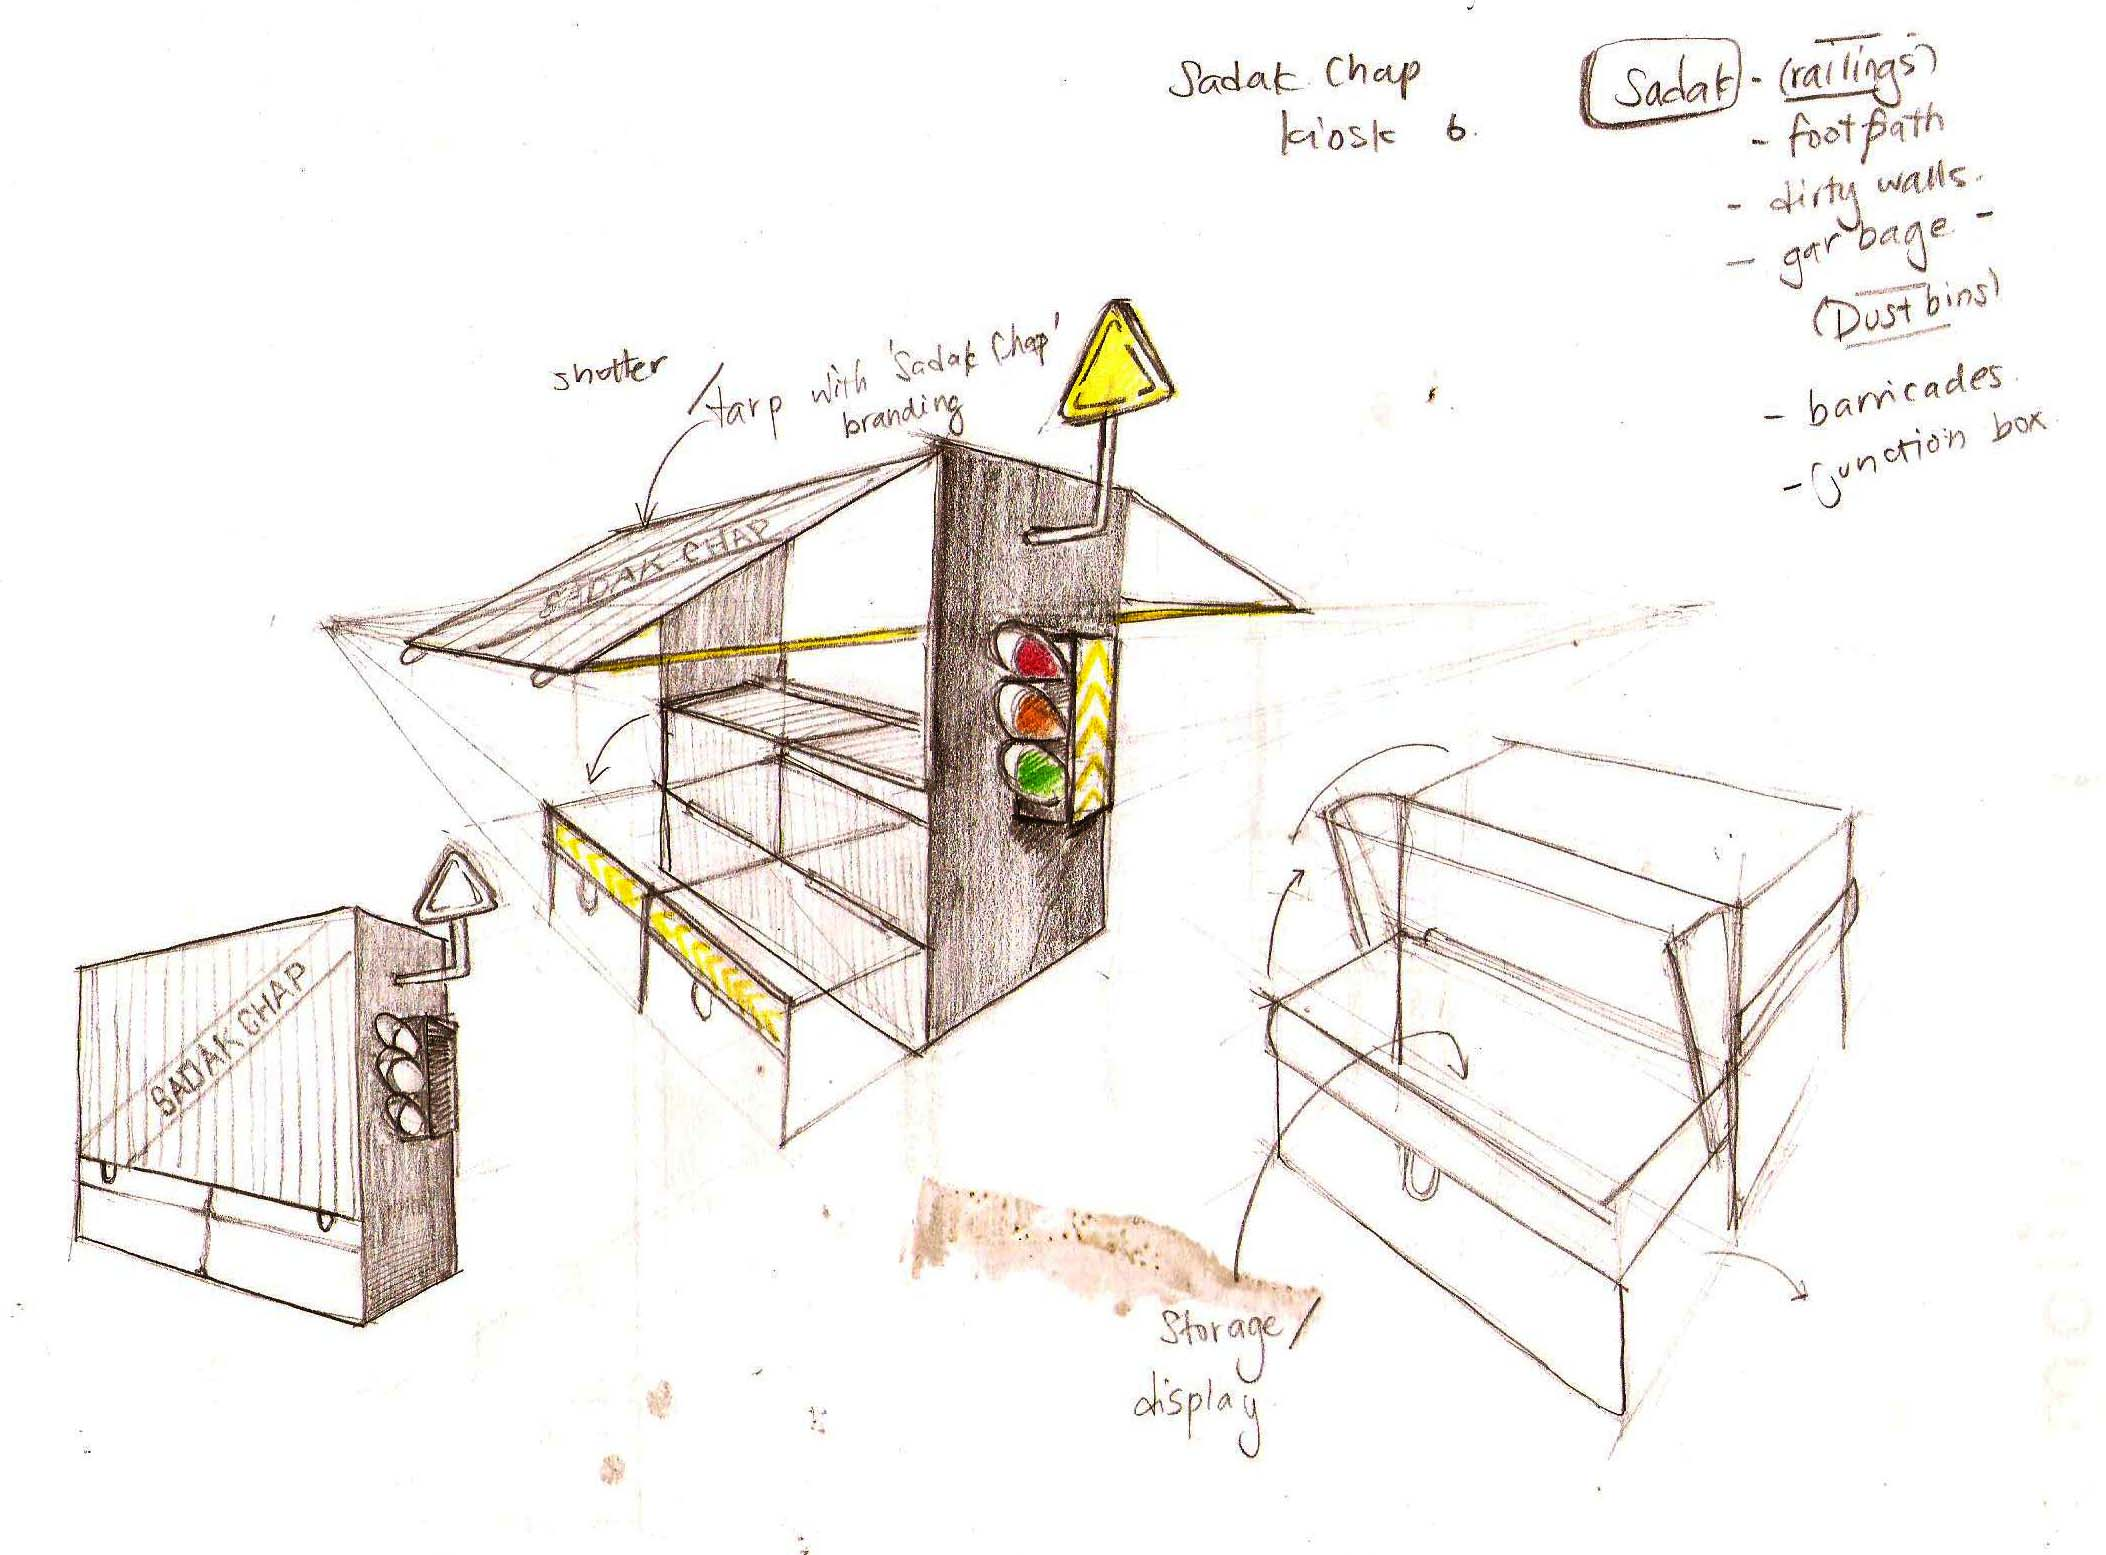 Kiosks design ideas images for Architecture kiosk design